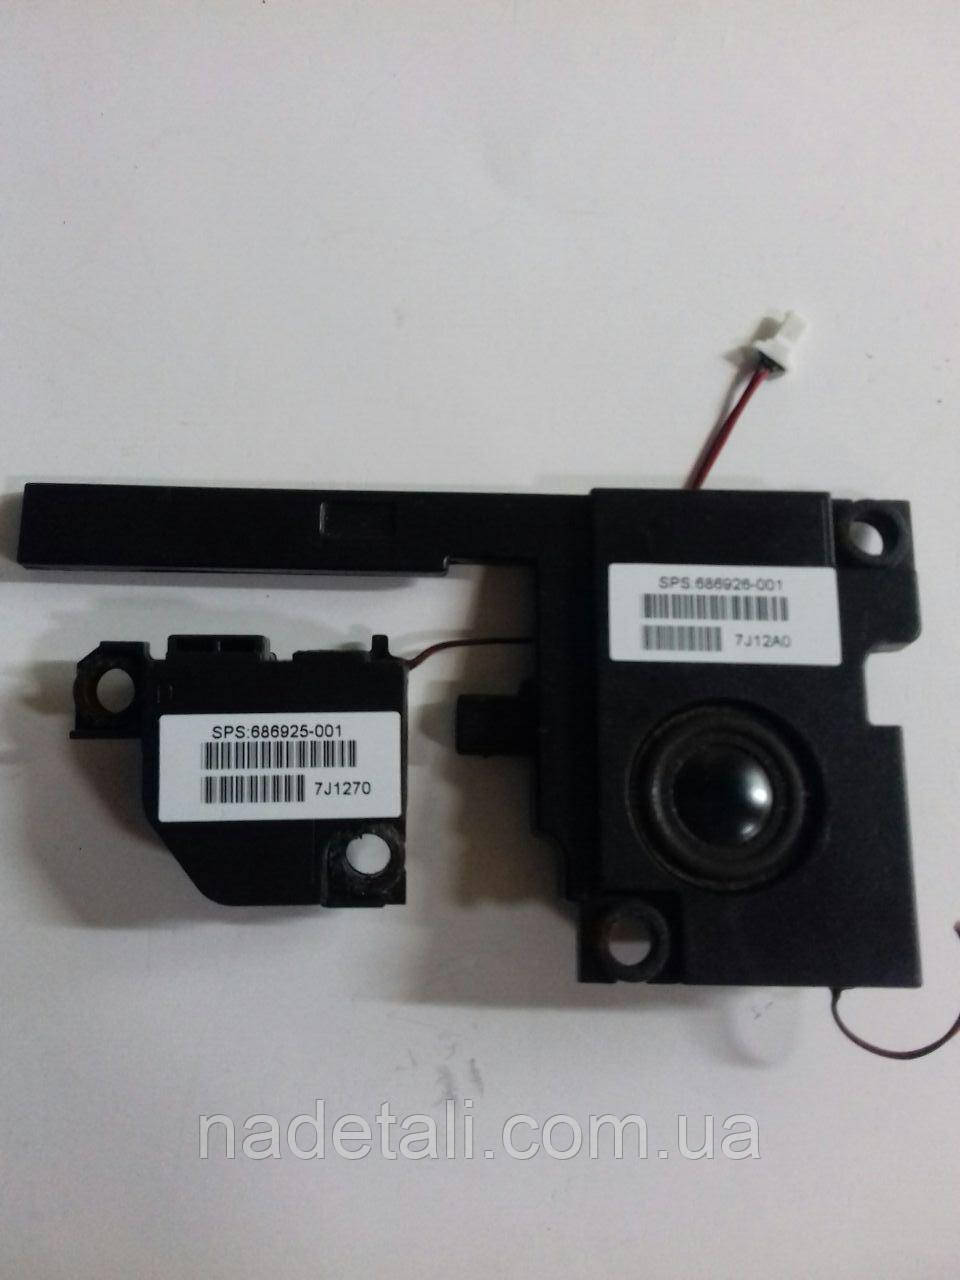 Динамики  HP Envy m6 -1000 series  686925-001